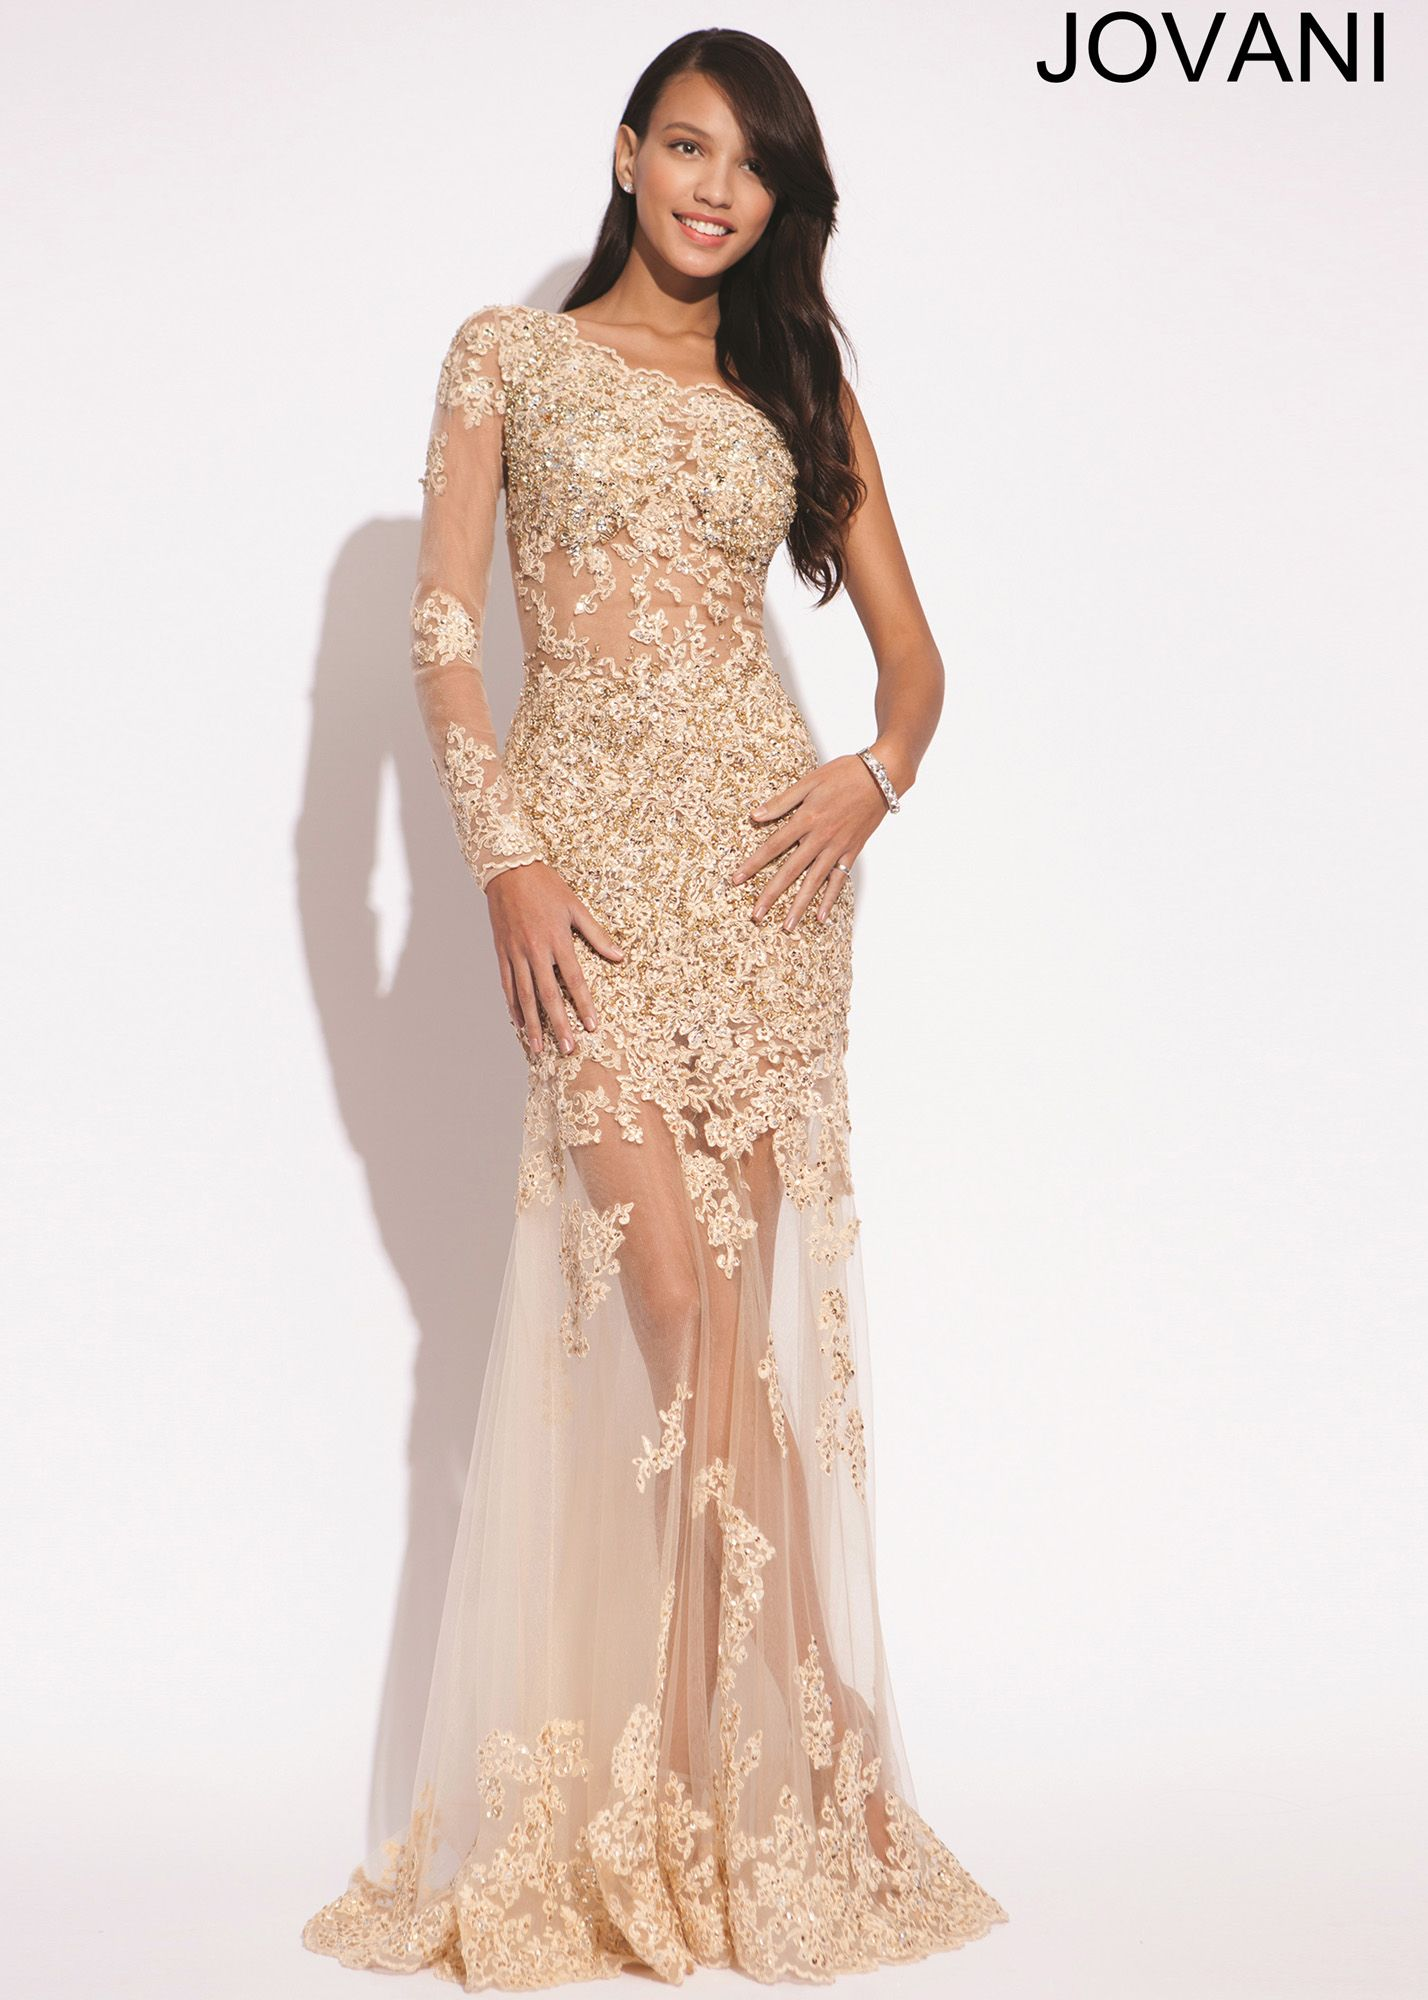 Jovani 73072 - Nude Lace One Shoulder Mermaid Prom Dresses Online ...